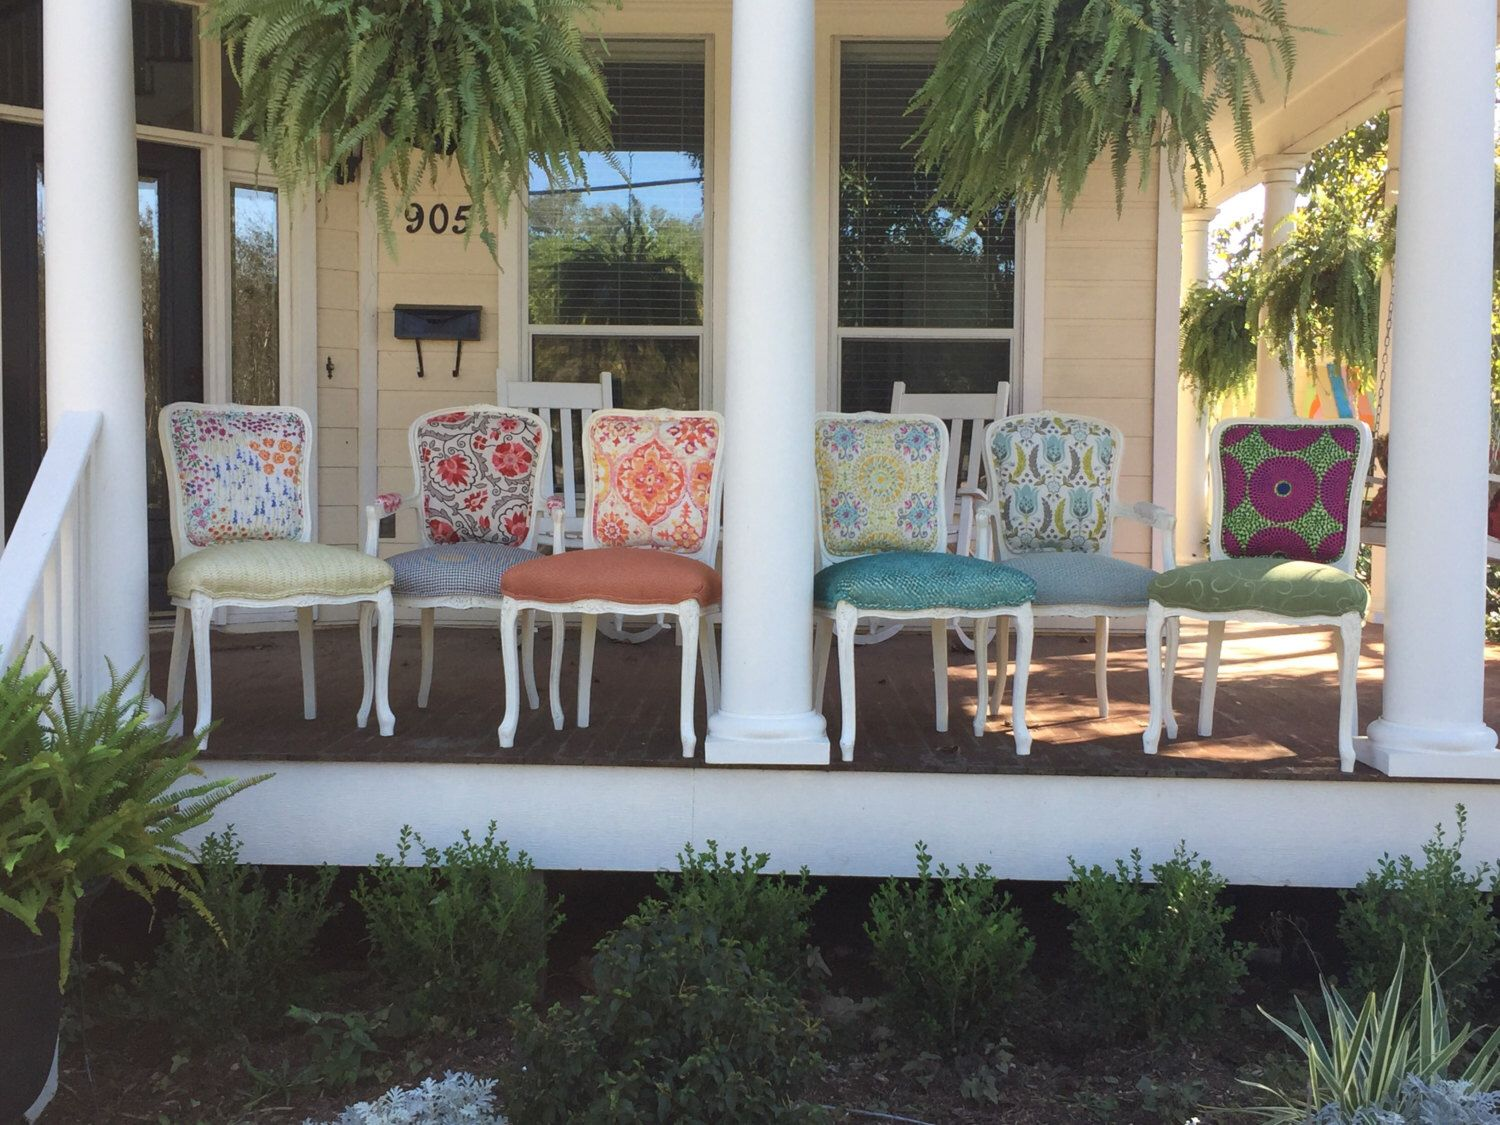 Eclectic Boho Dining Chairs by ChairWhimsy on Etsy https://www.etsy.com/listing/478980514/eclectic-boho-dining-chairs